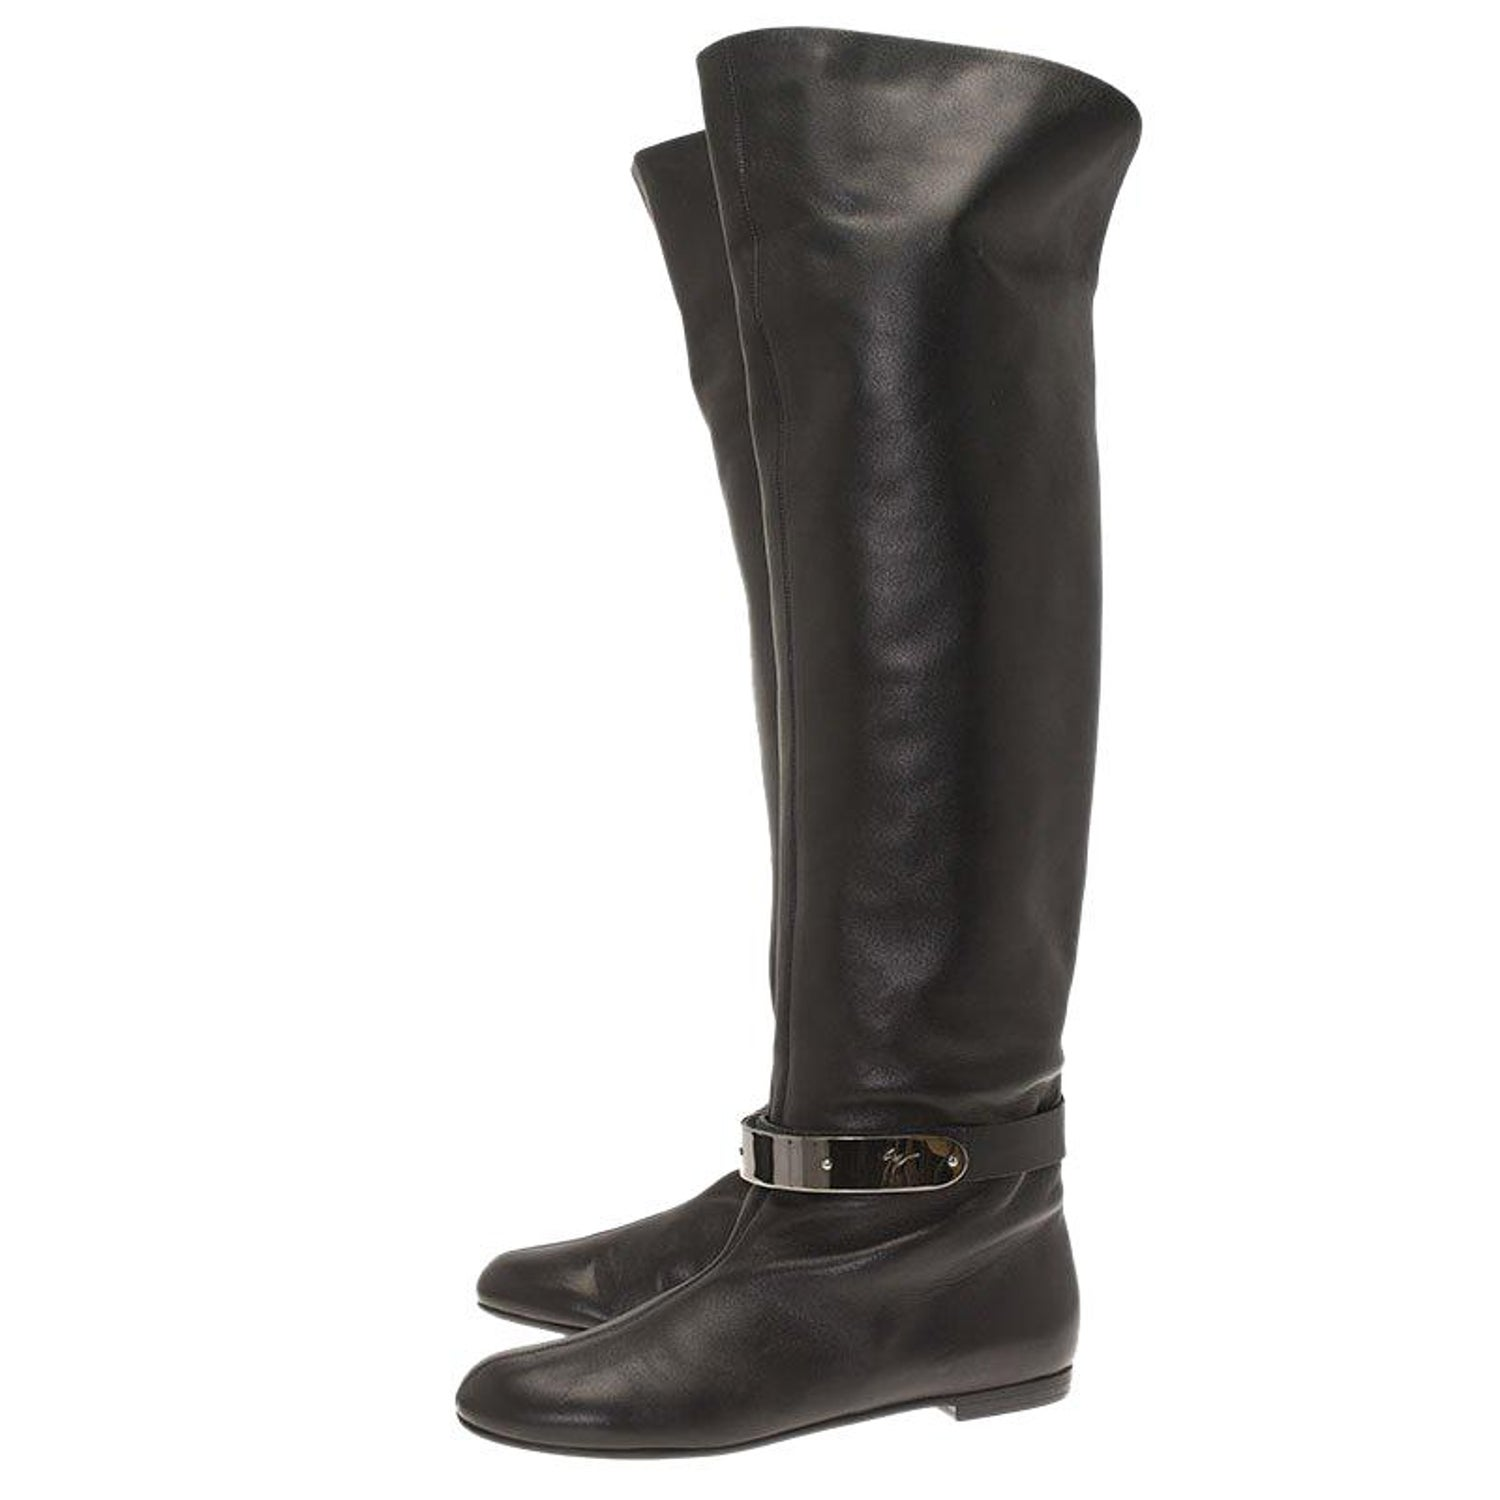 9acb4277554f7 Giuseppe Zanotti Black Leather Logo Plaque Flat Over the Knee Boots Size 41  For Sale at 1stdibs